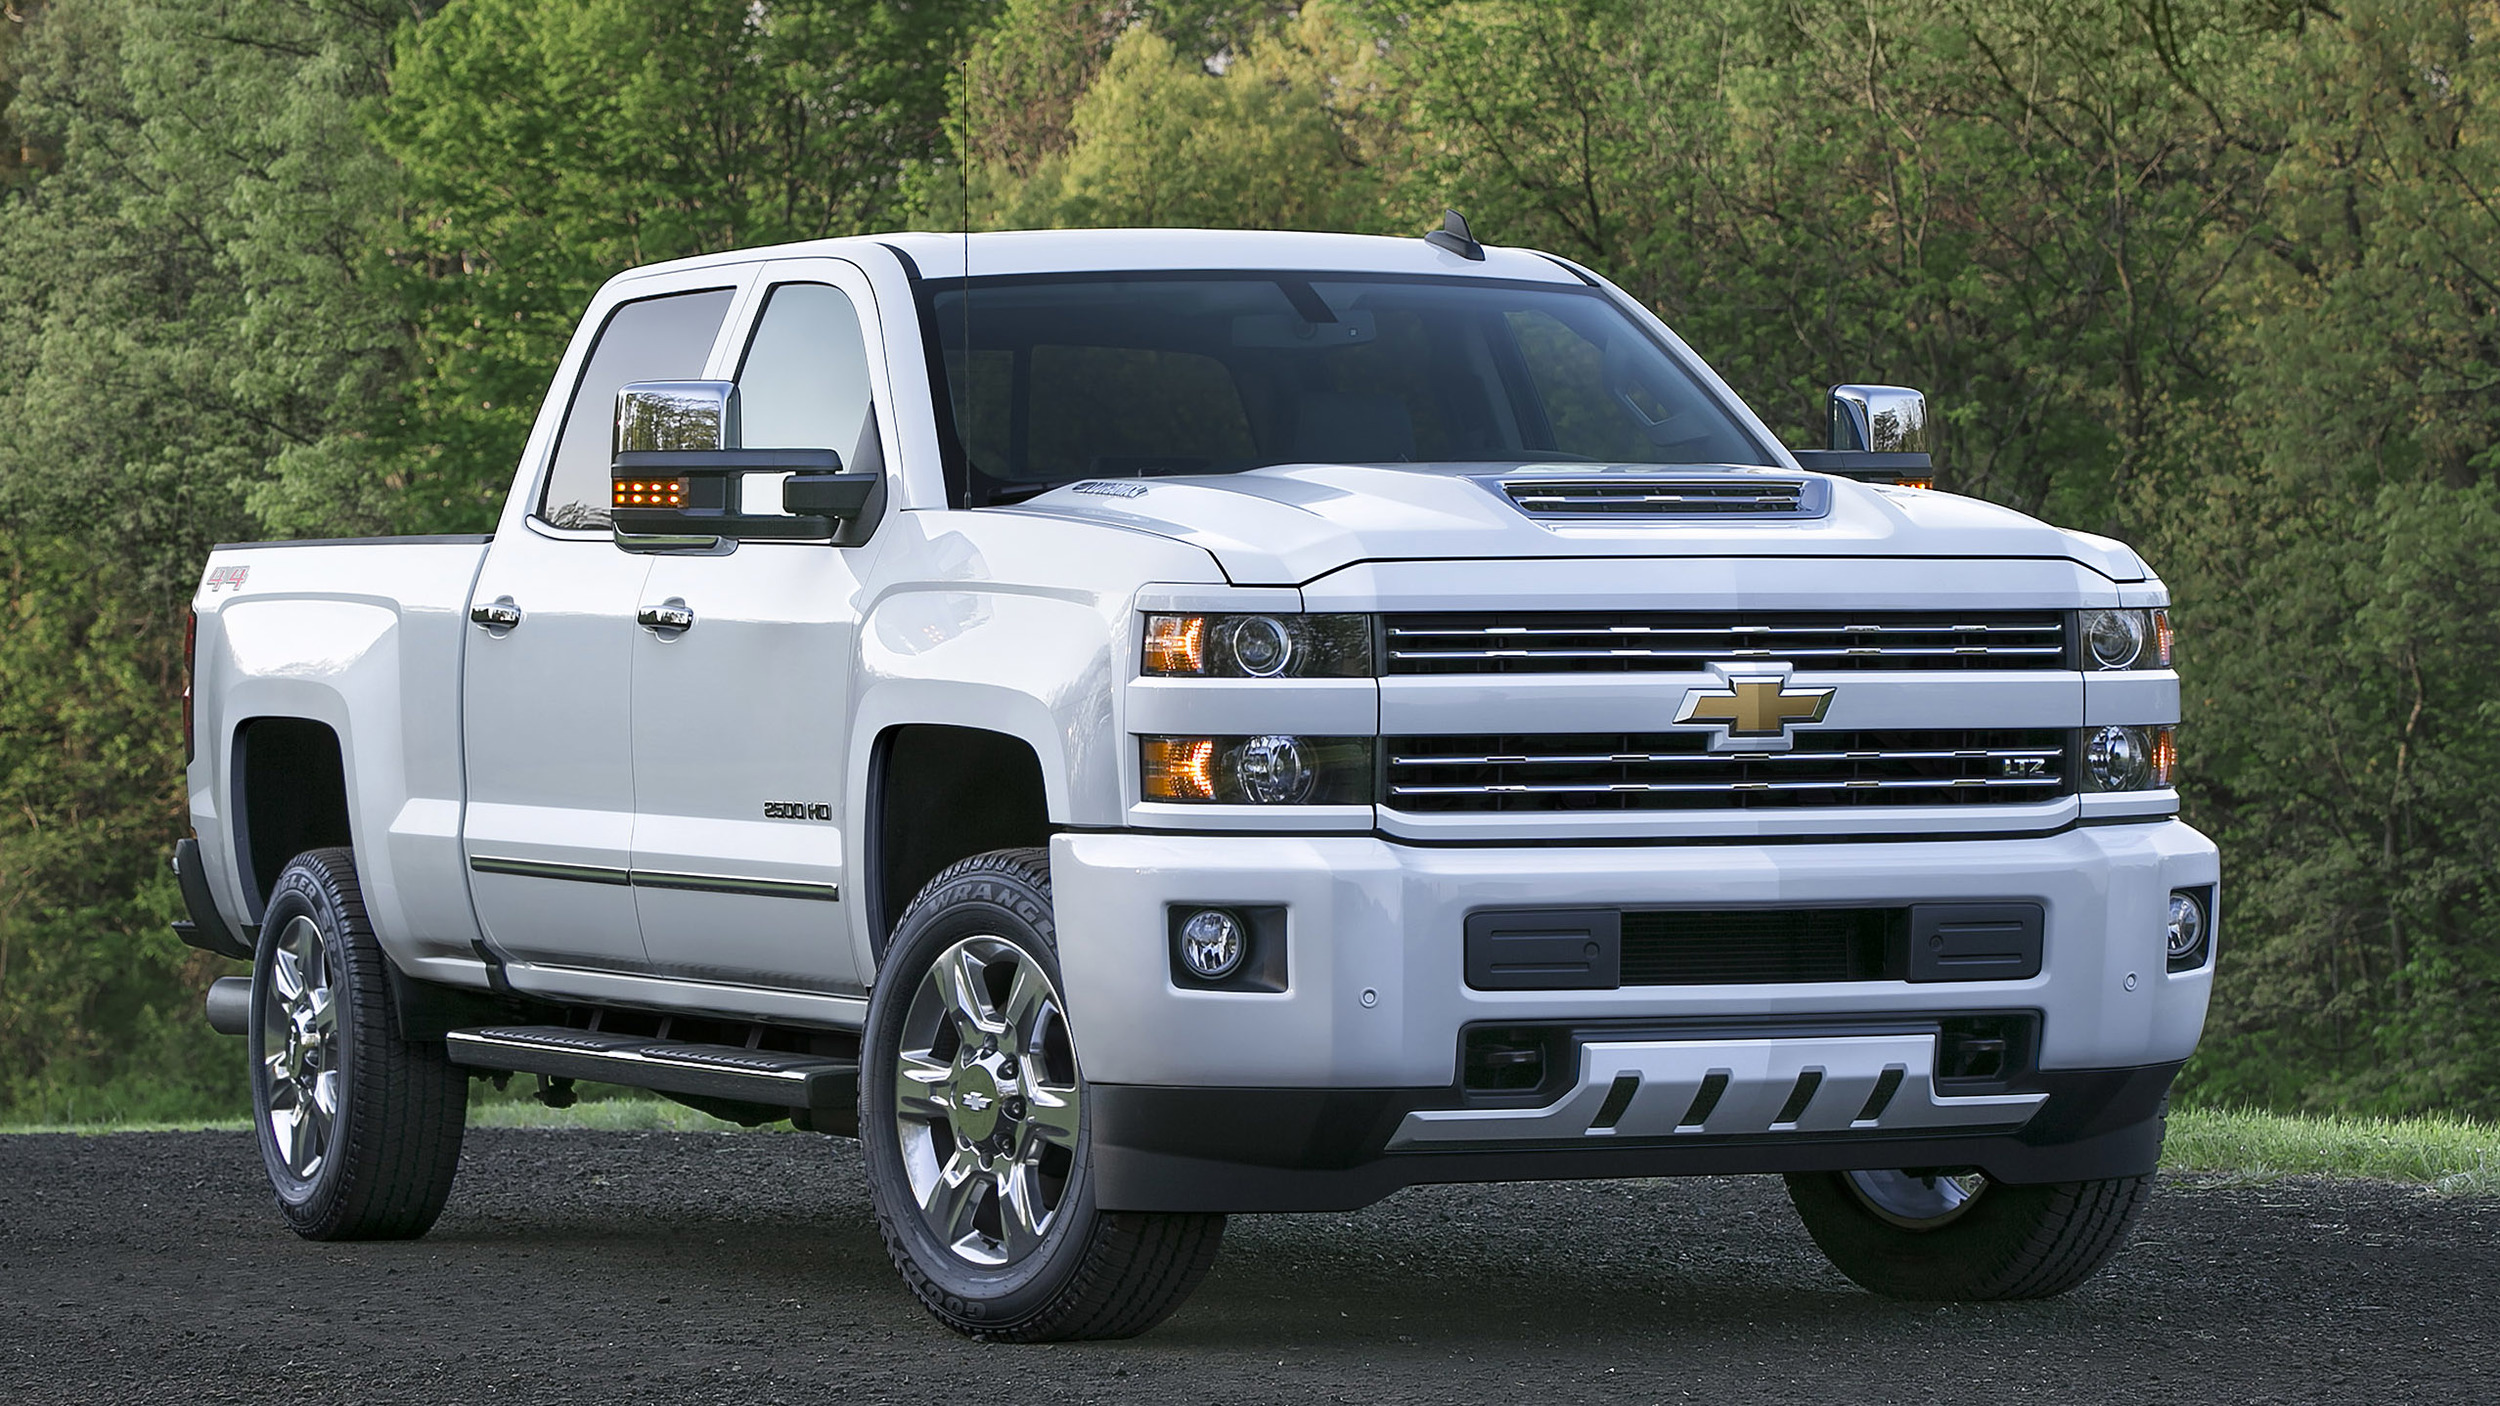 2017 Chevrolet Silverado 2500 Hd Boasts Functional Hood Scoop